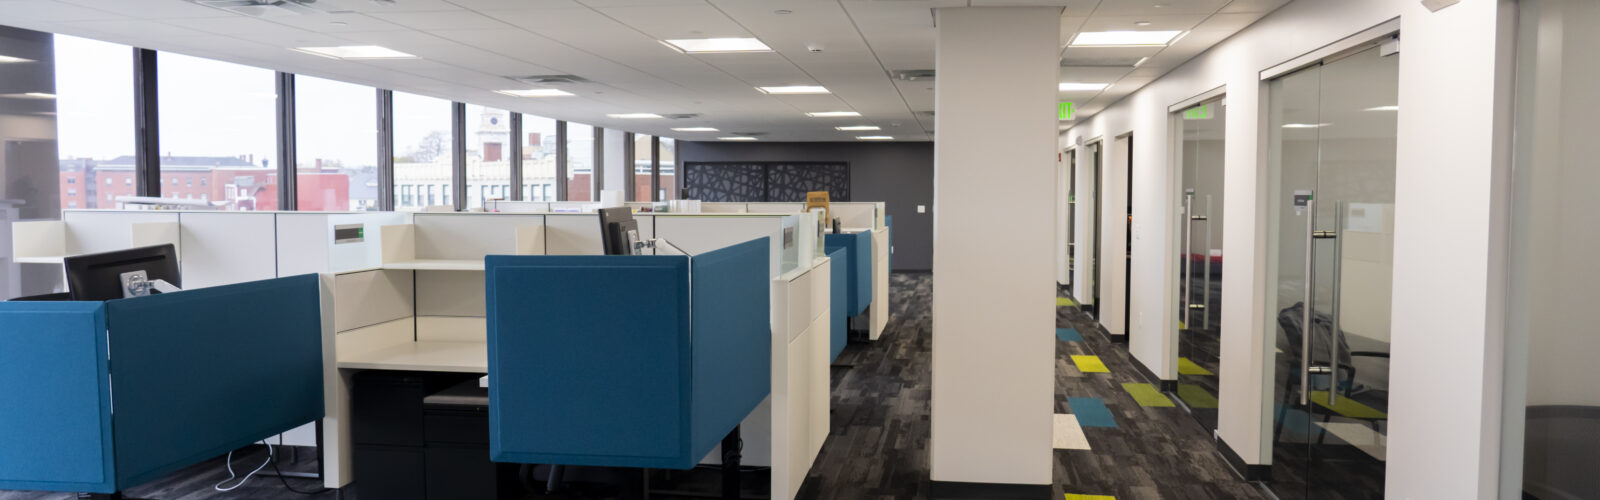 photo of office space with cubicles and glass doors